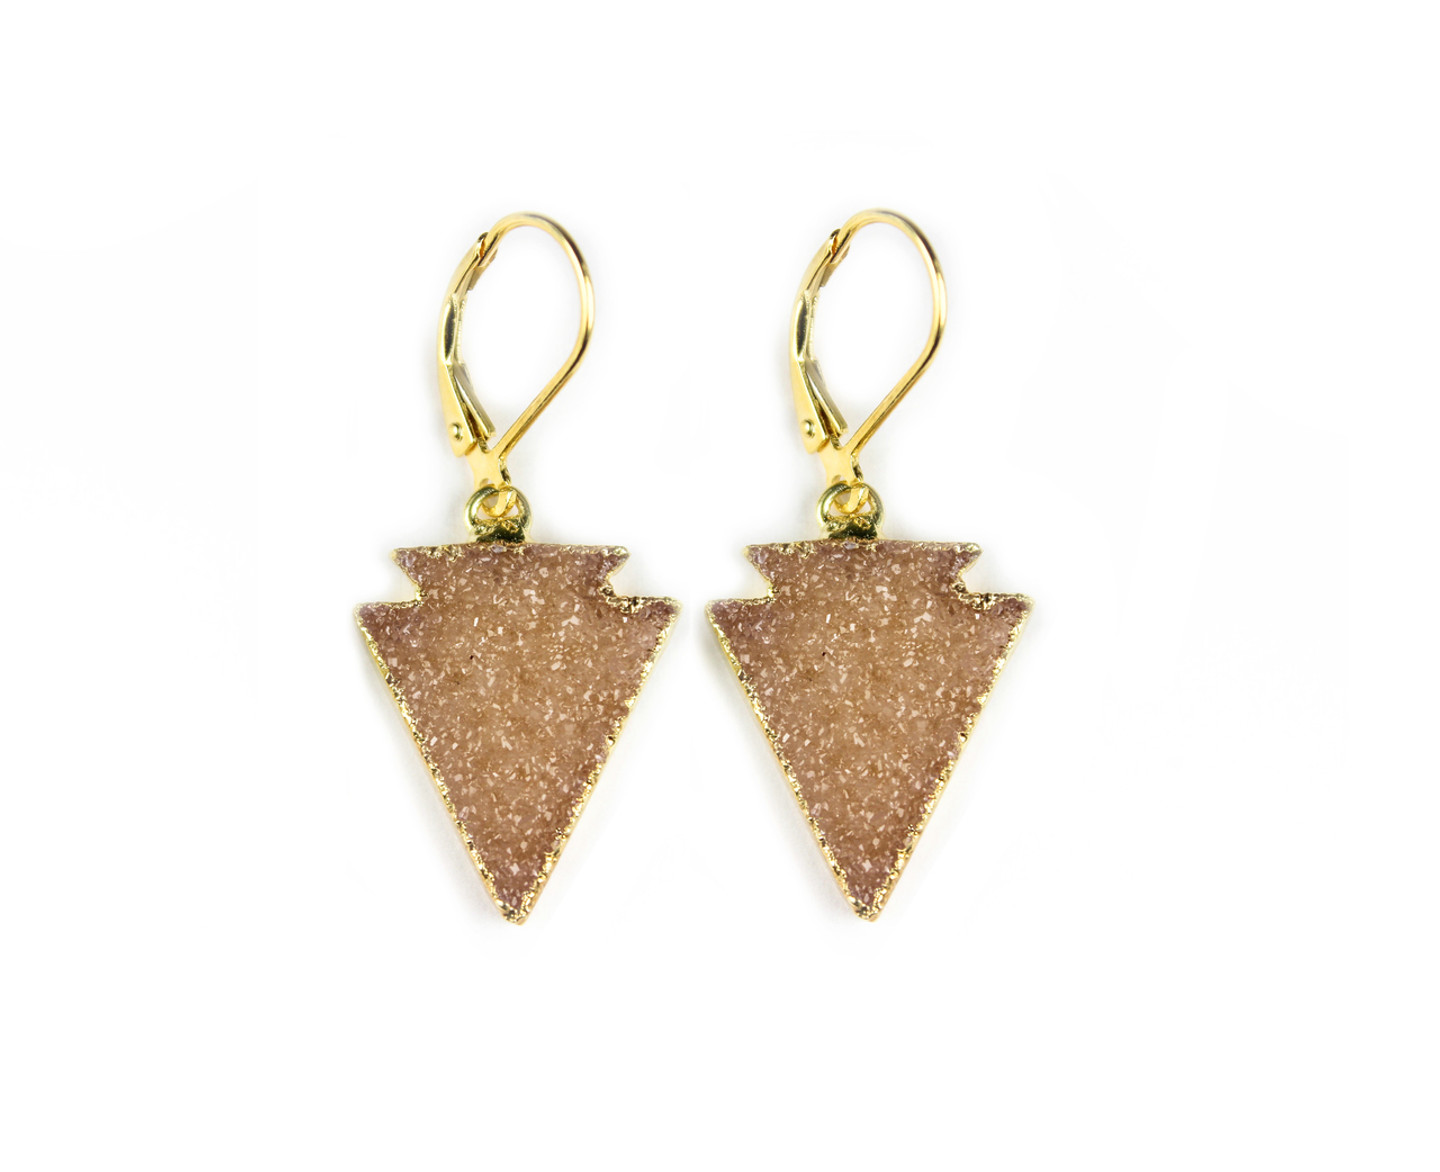 18K Gold over Sterling Silver Druzy Arrow Earrings